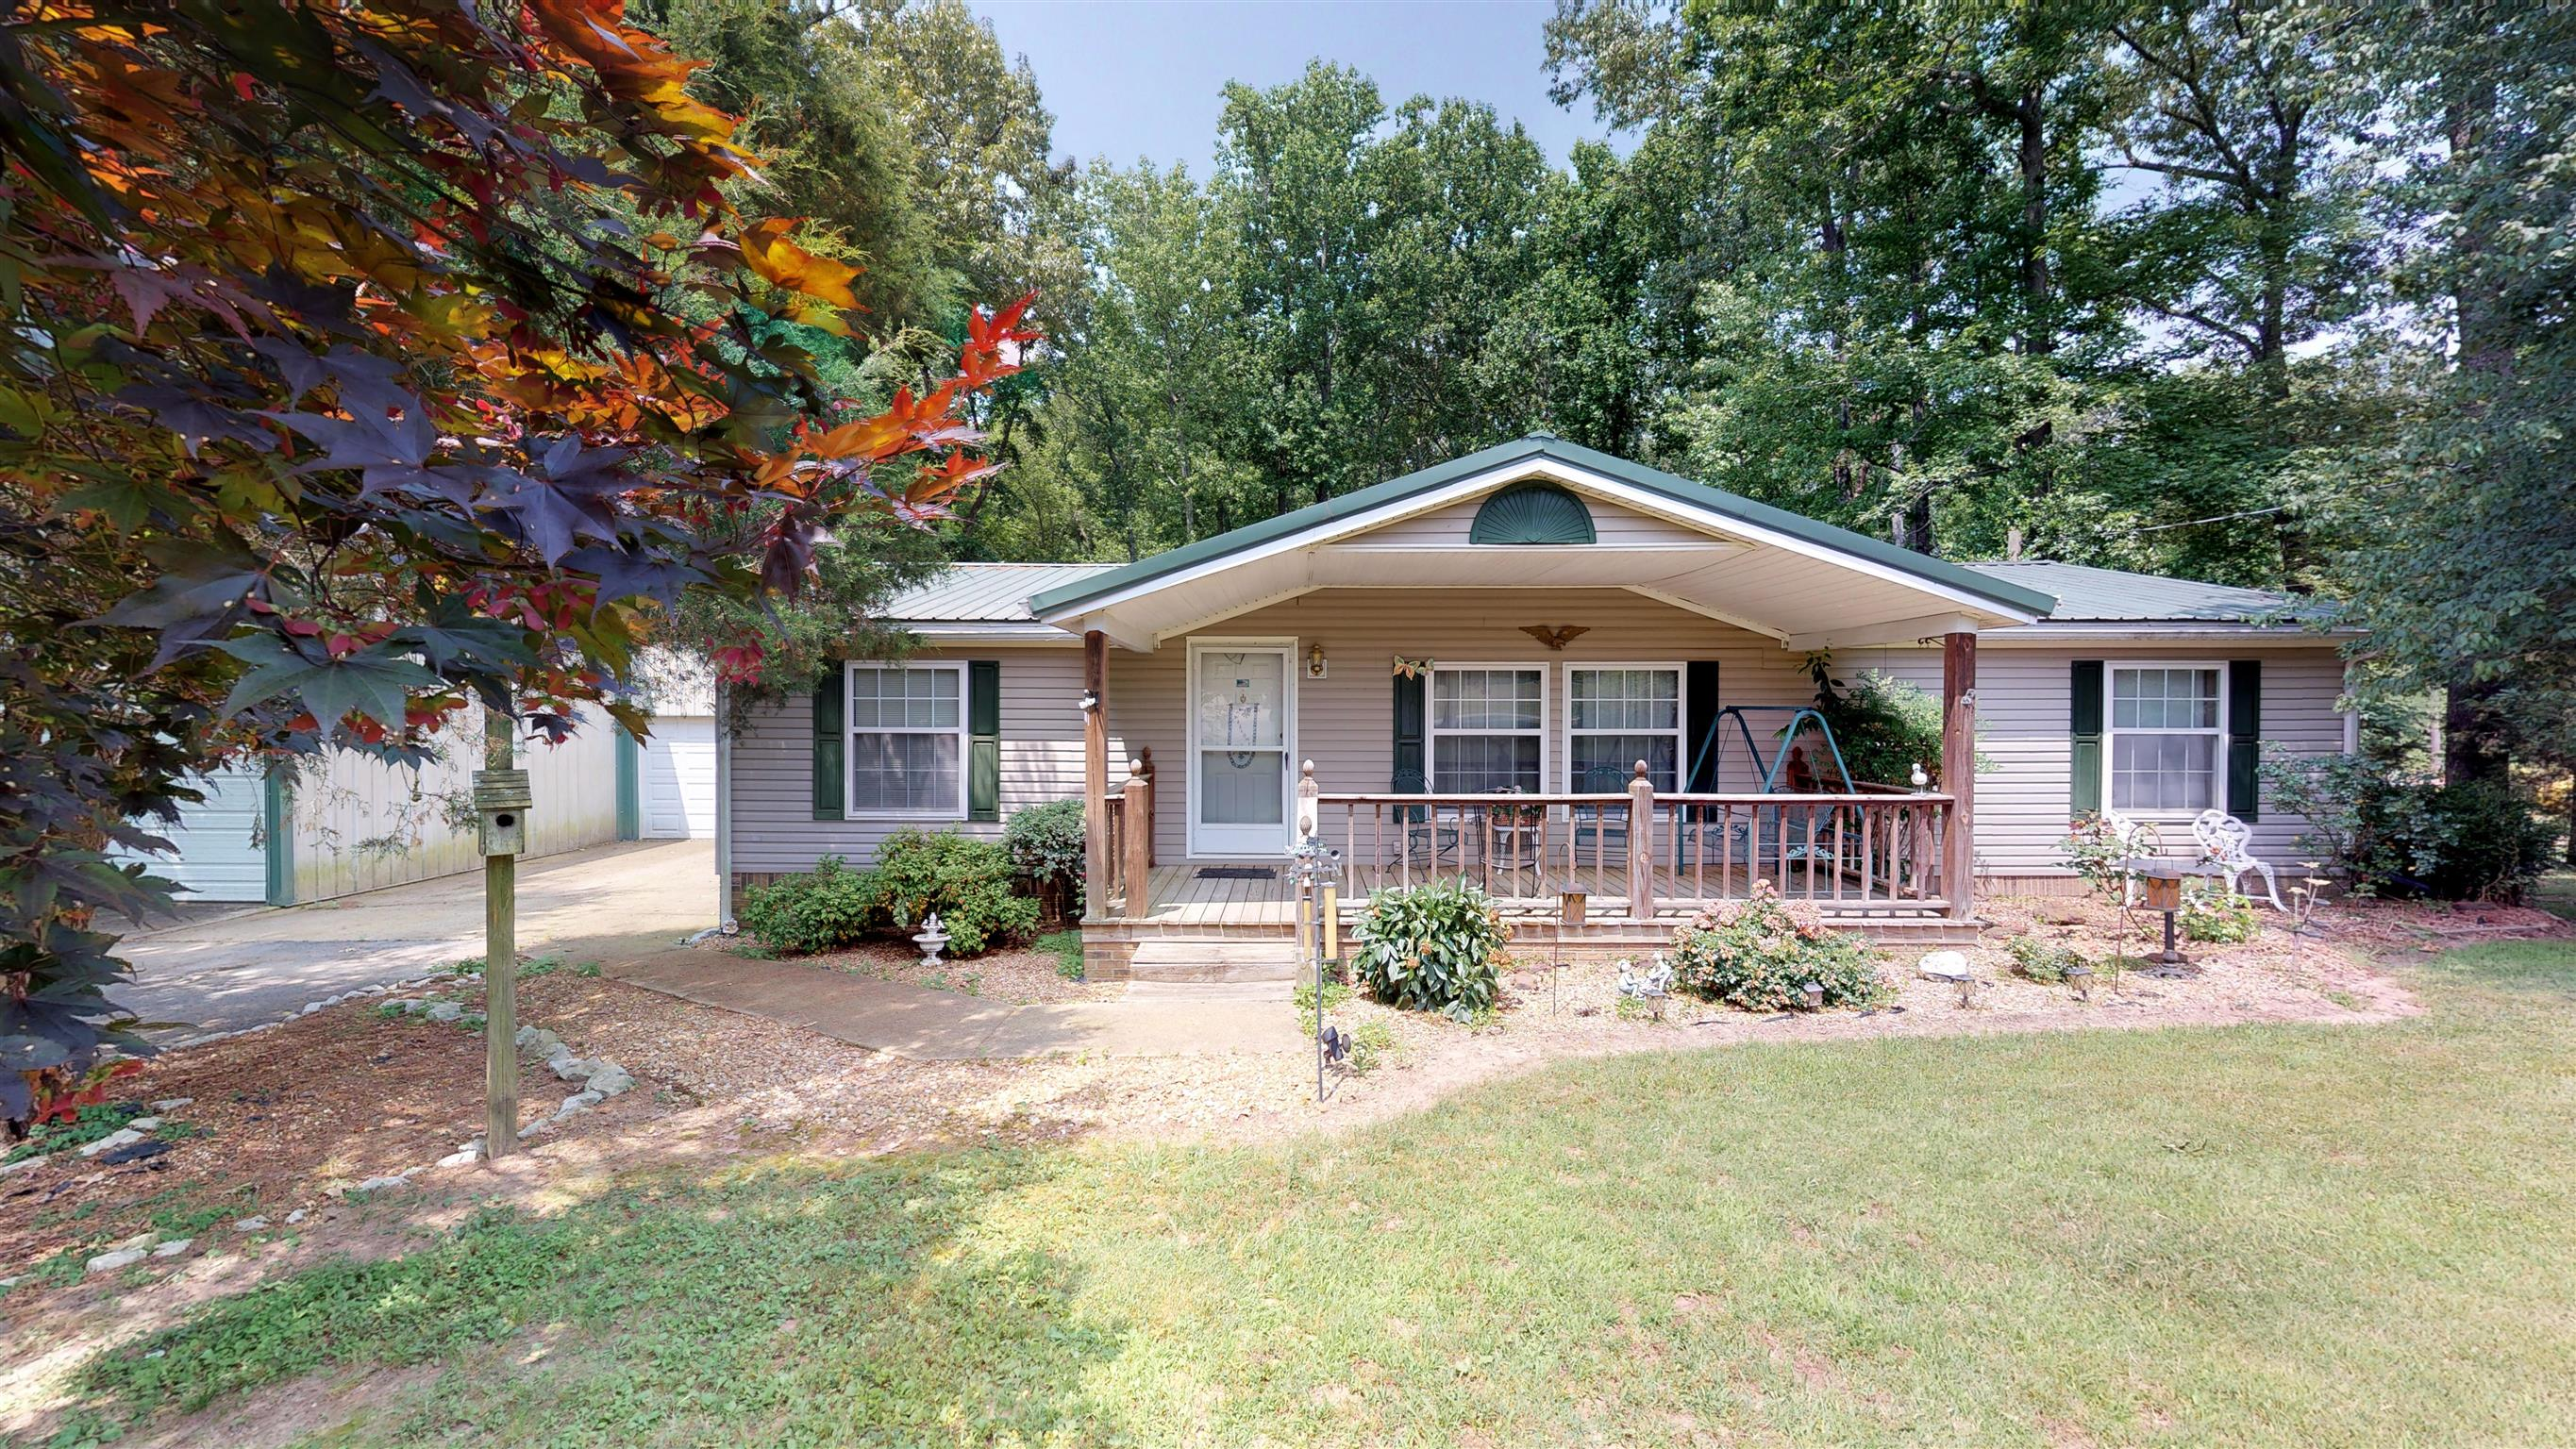 260 Holiday Acres Dr, Springville, TN 38256 - Springville, TN real estate listing